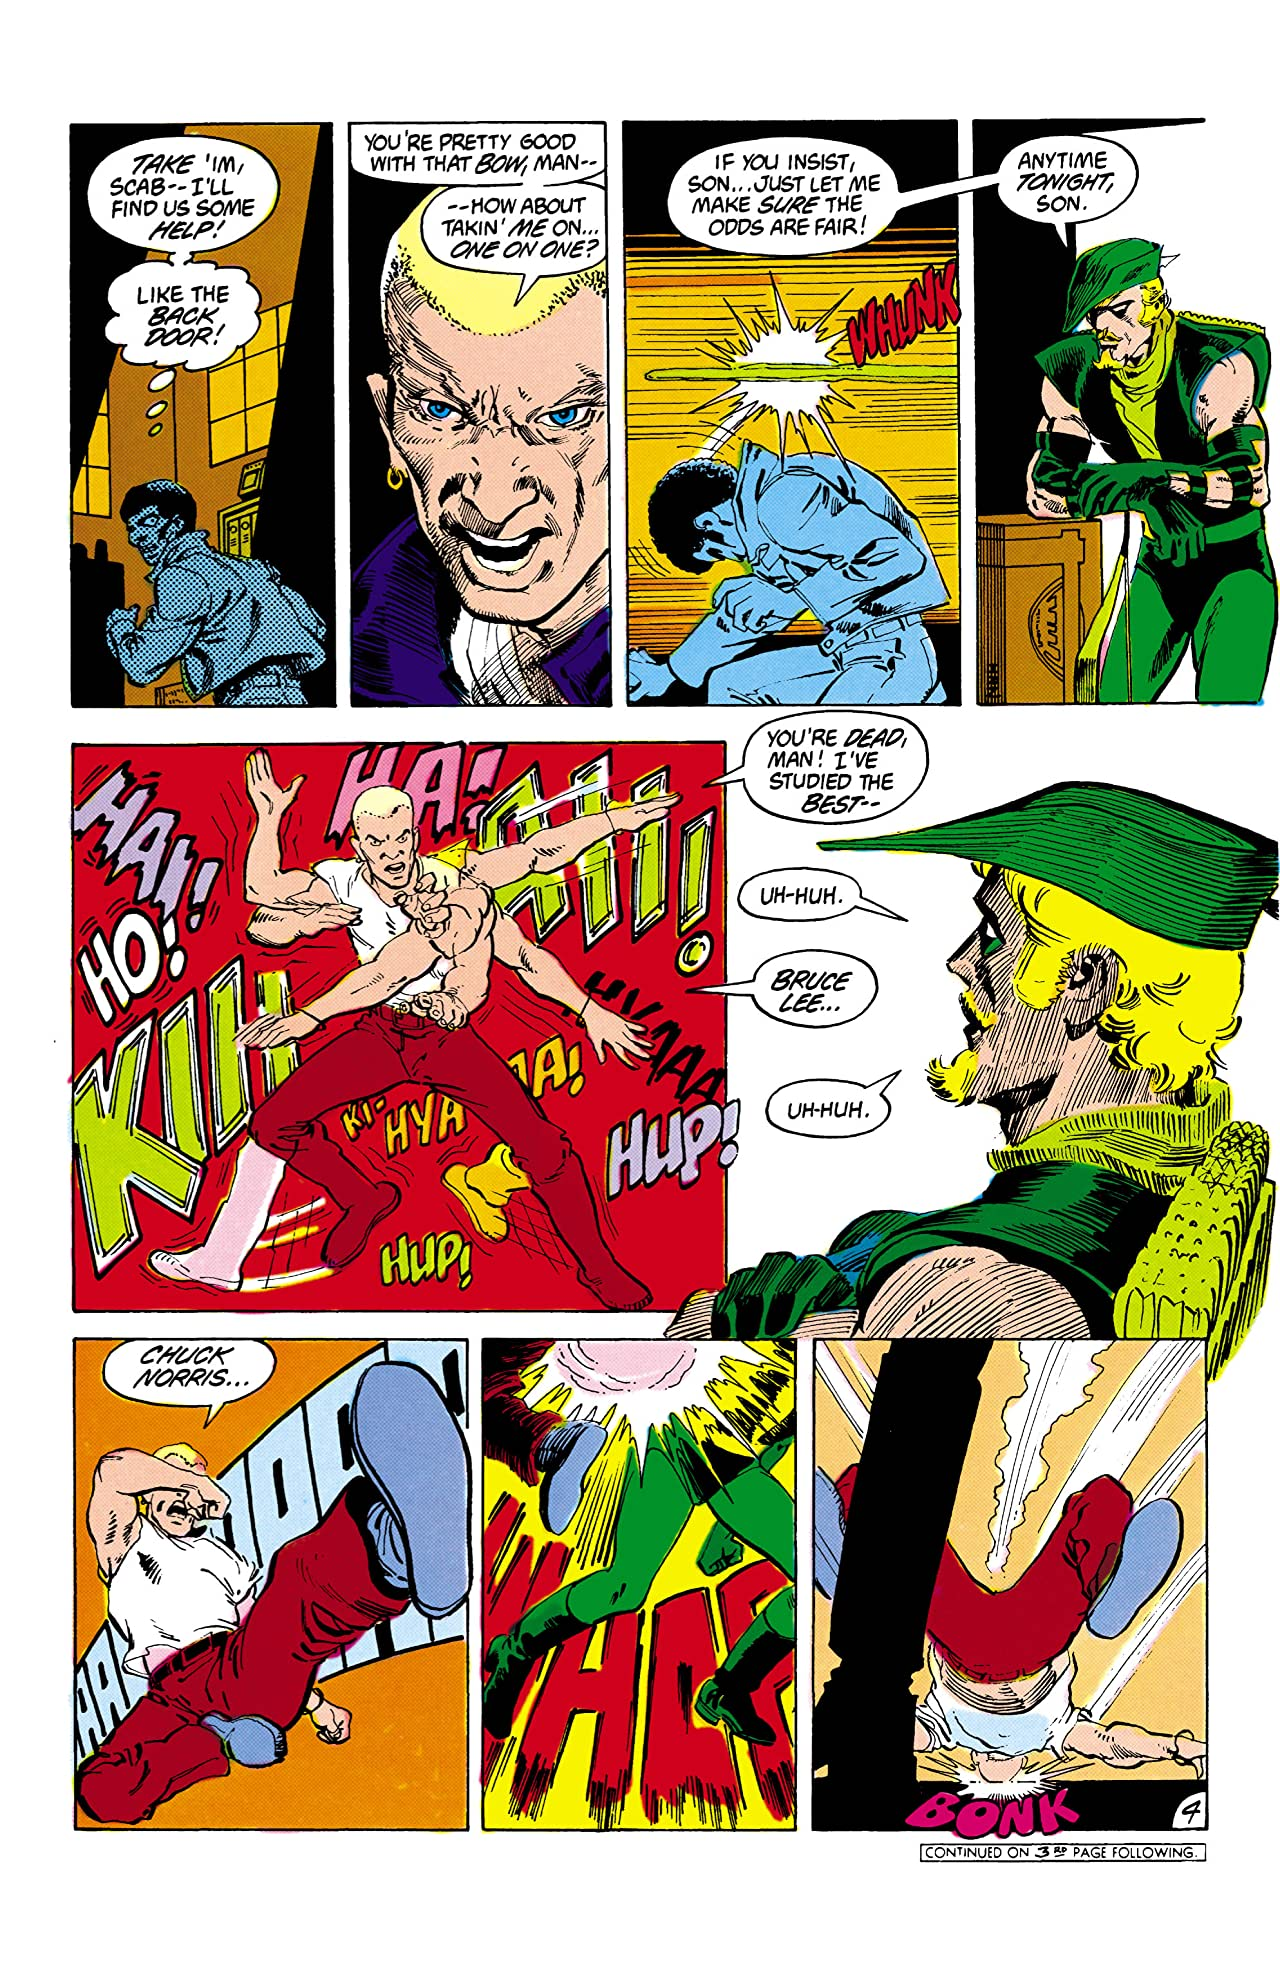 Green Arrow (1983) #1